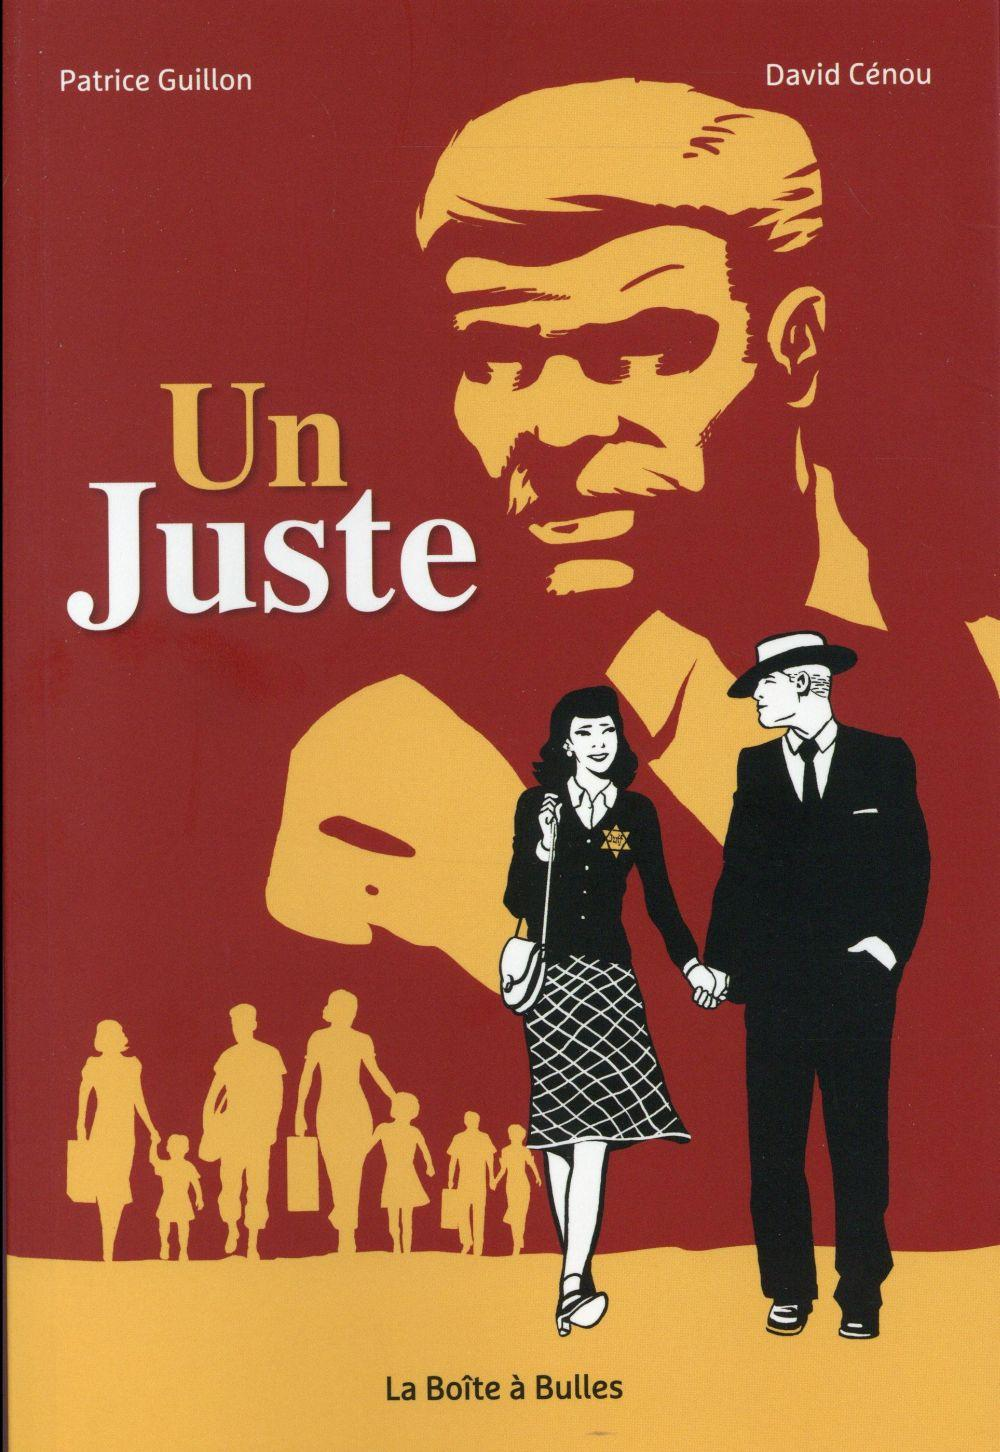 Un juste  - Patrice Guillon  - David Cenou